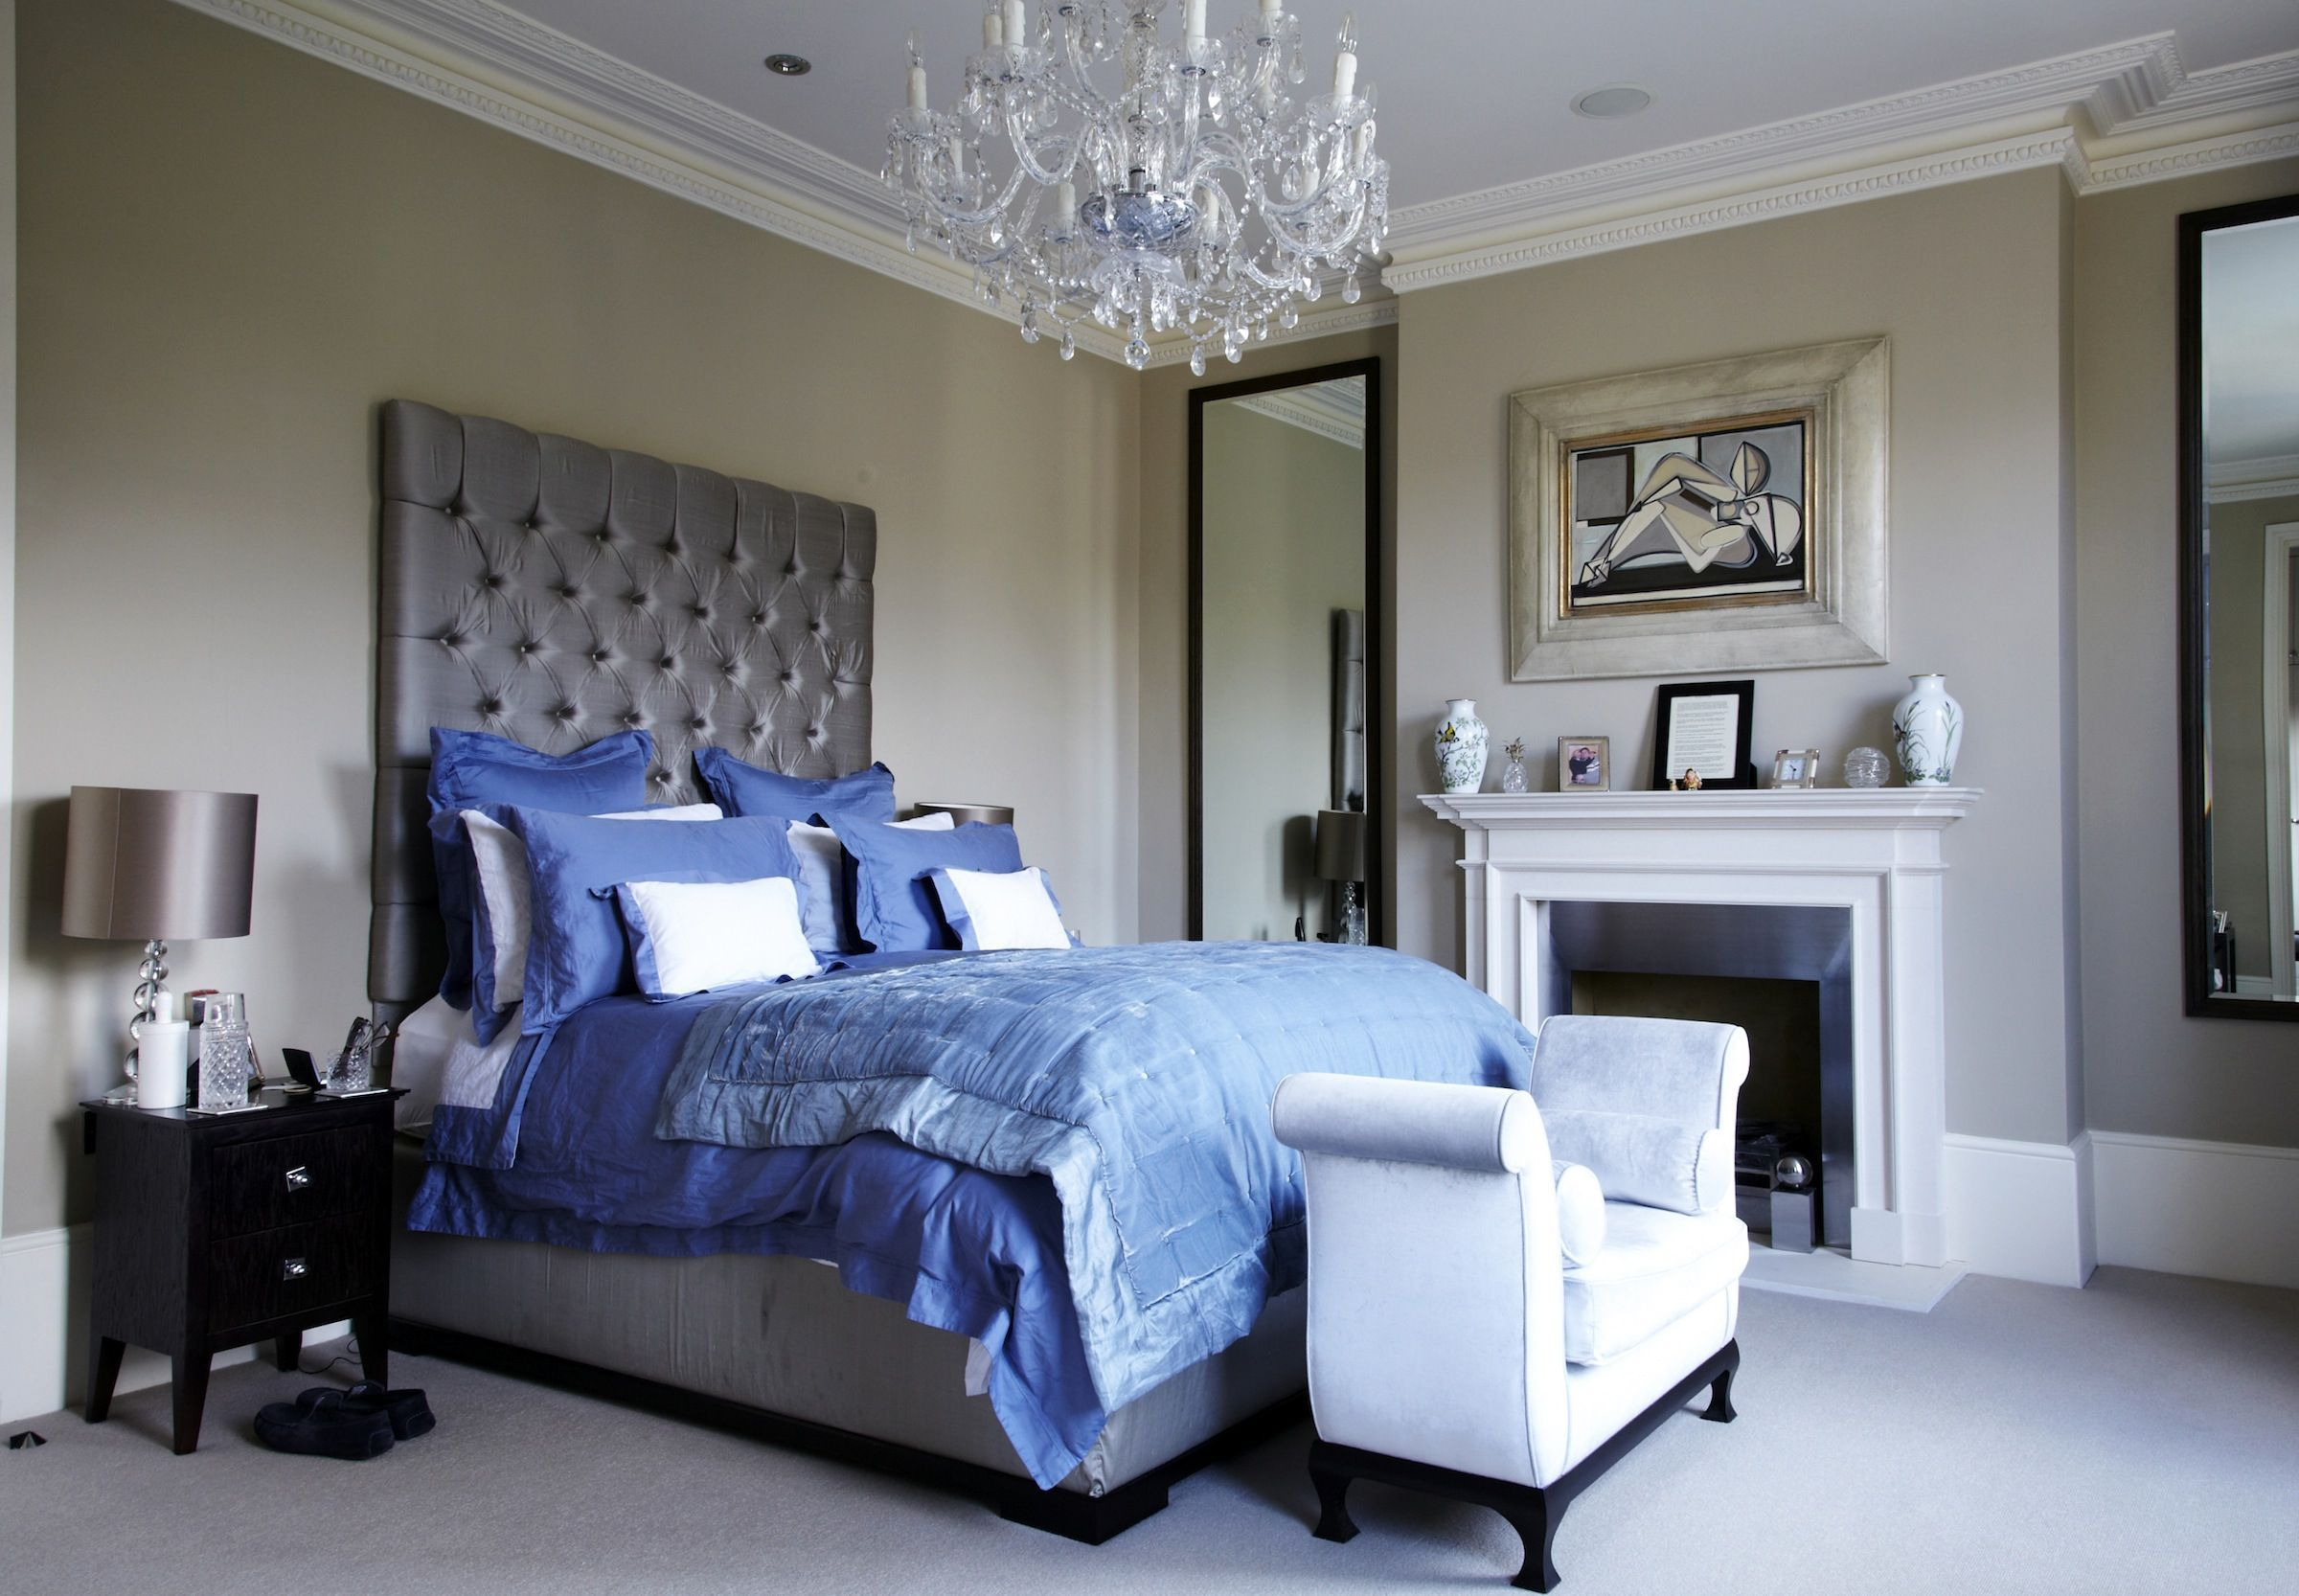 Bedroom Ideas Victorian House  French country living room, Modern